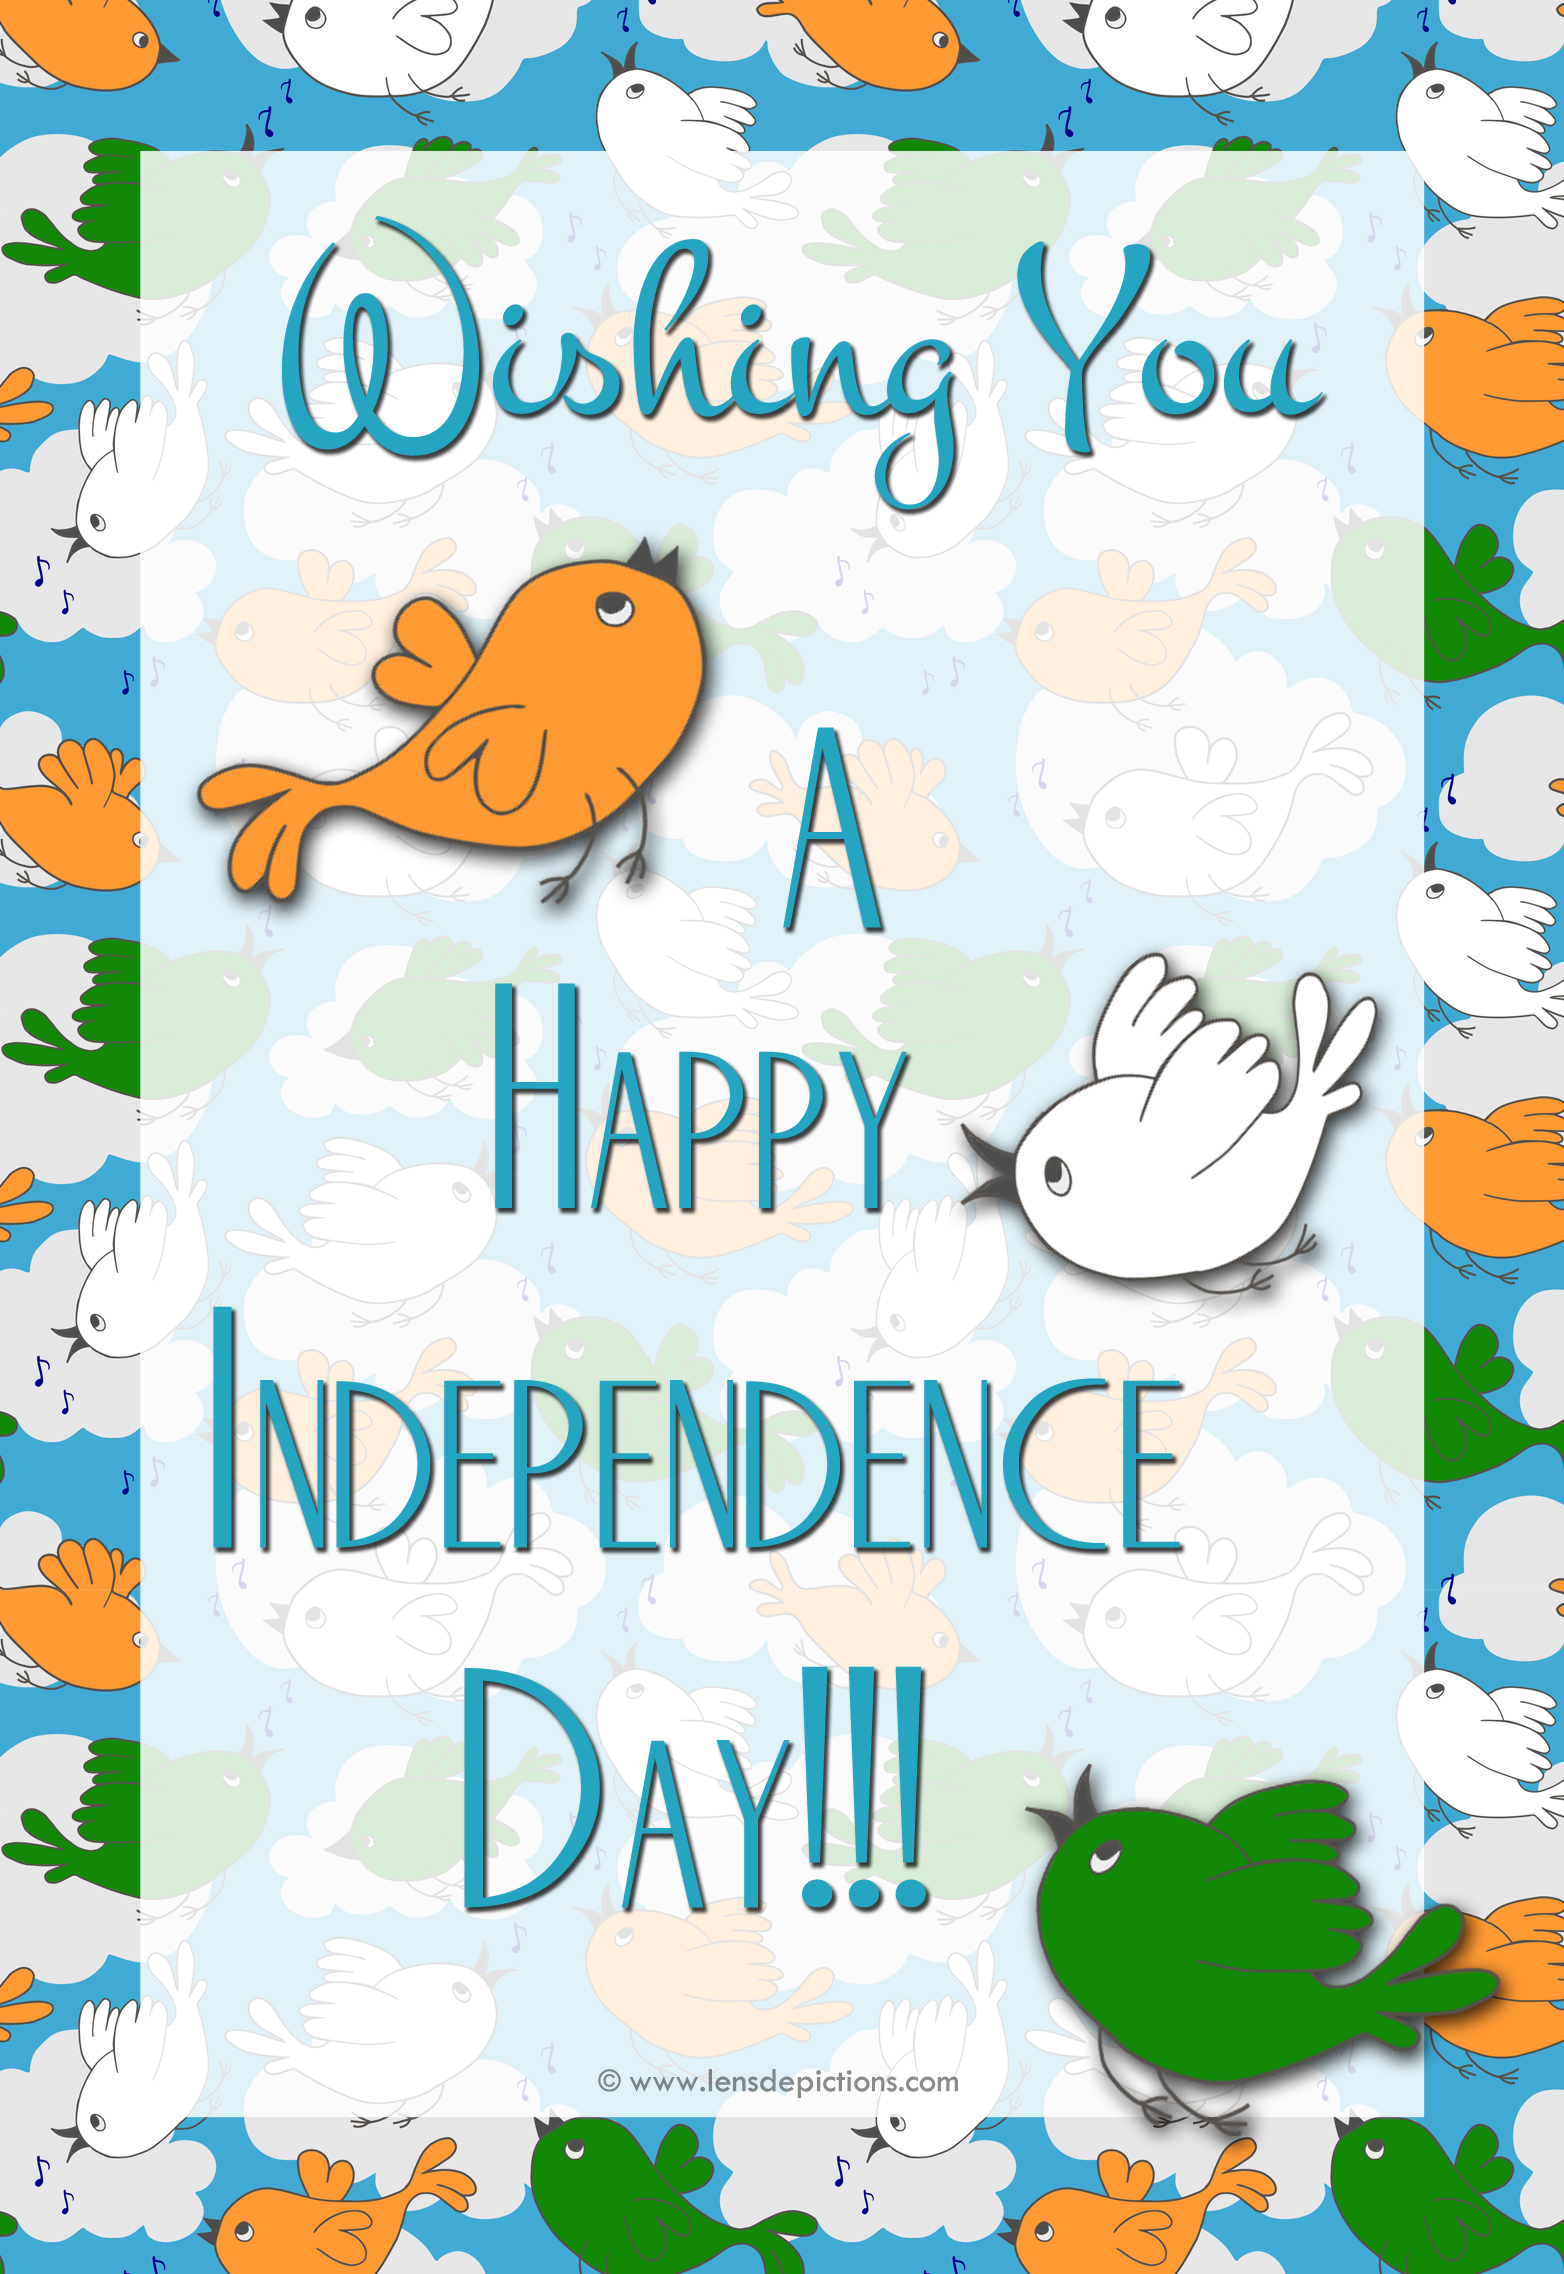 Independence Day India – Free Wish Banner!